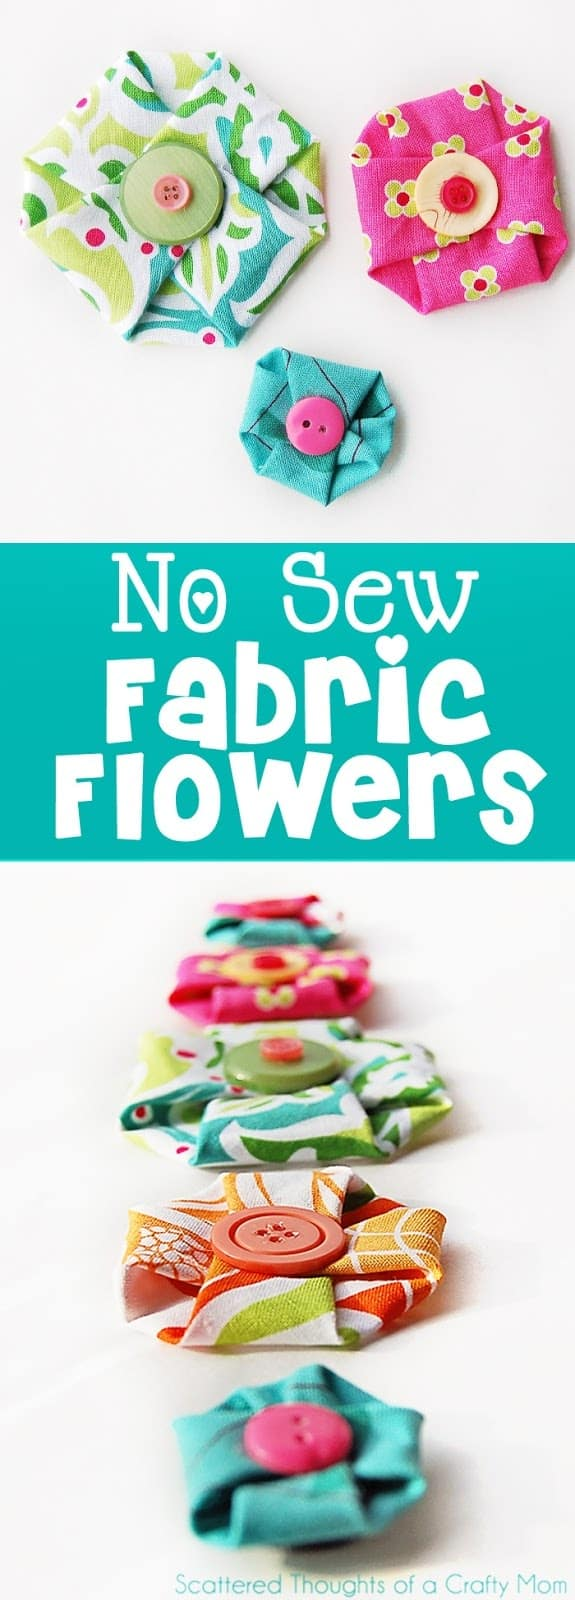 Make these adorable No Sew Fabric Flowers in less than a minute! (no sew flowers)